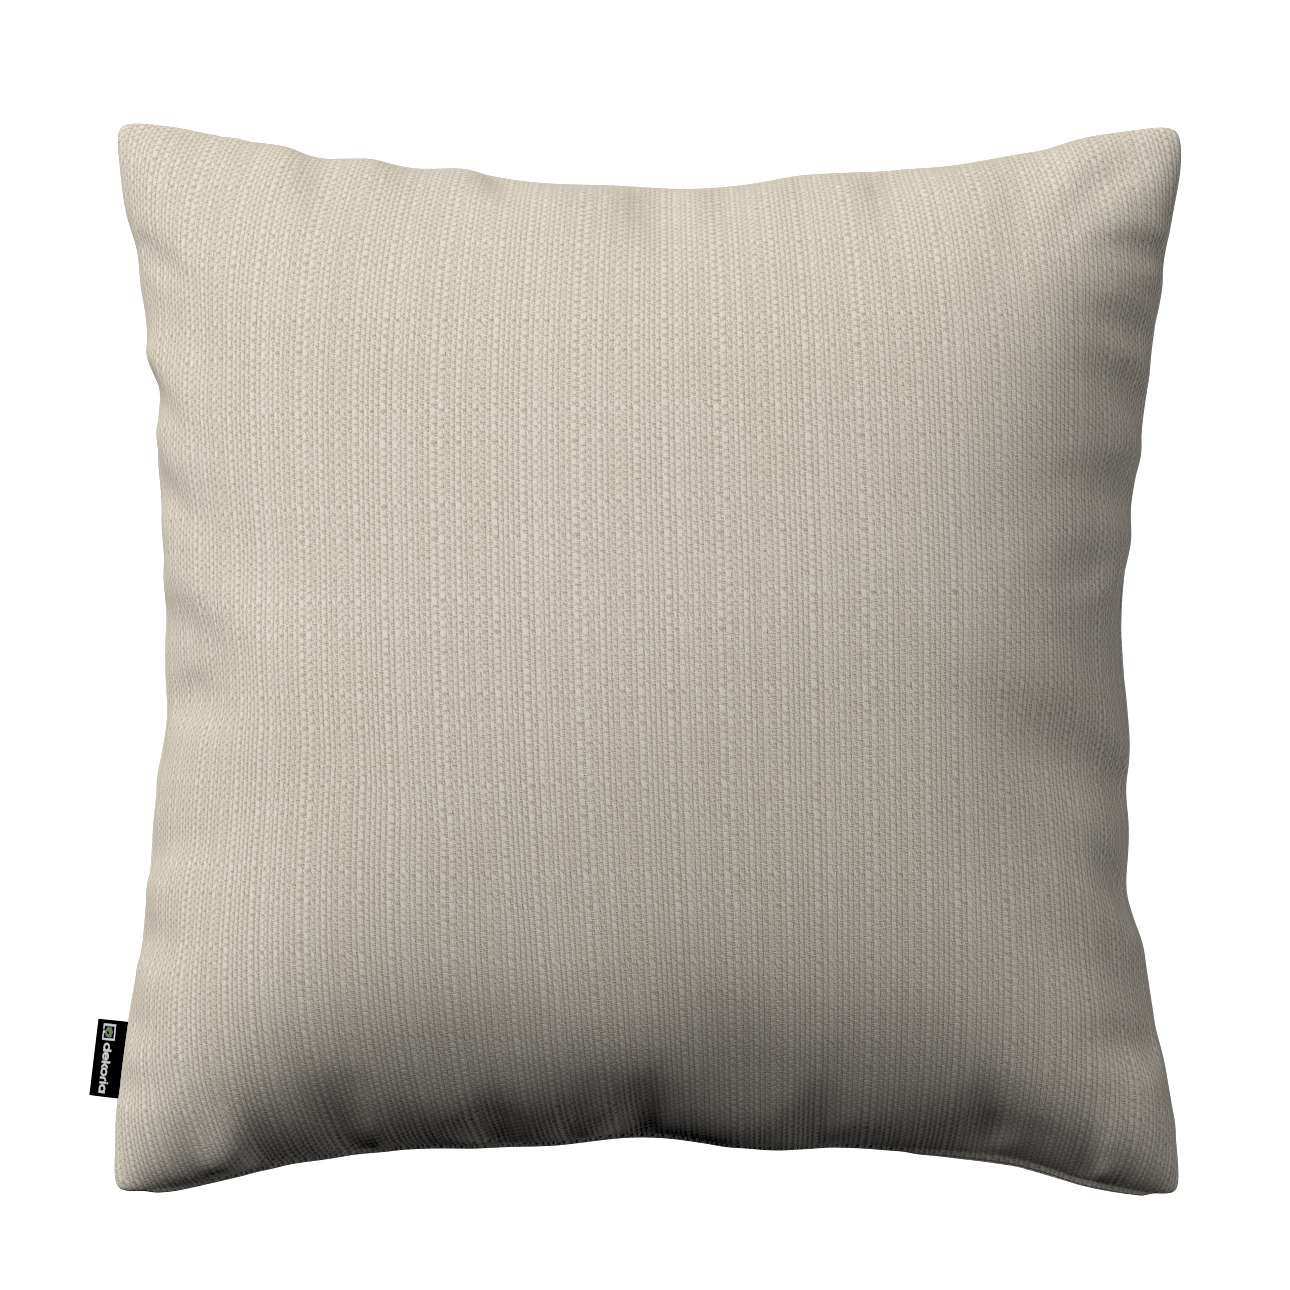 Kinga cushion cover 43 × 43 cm (17 × 17 inch) in collection Granada, fabric: 104-89